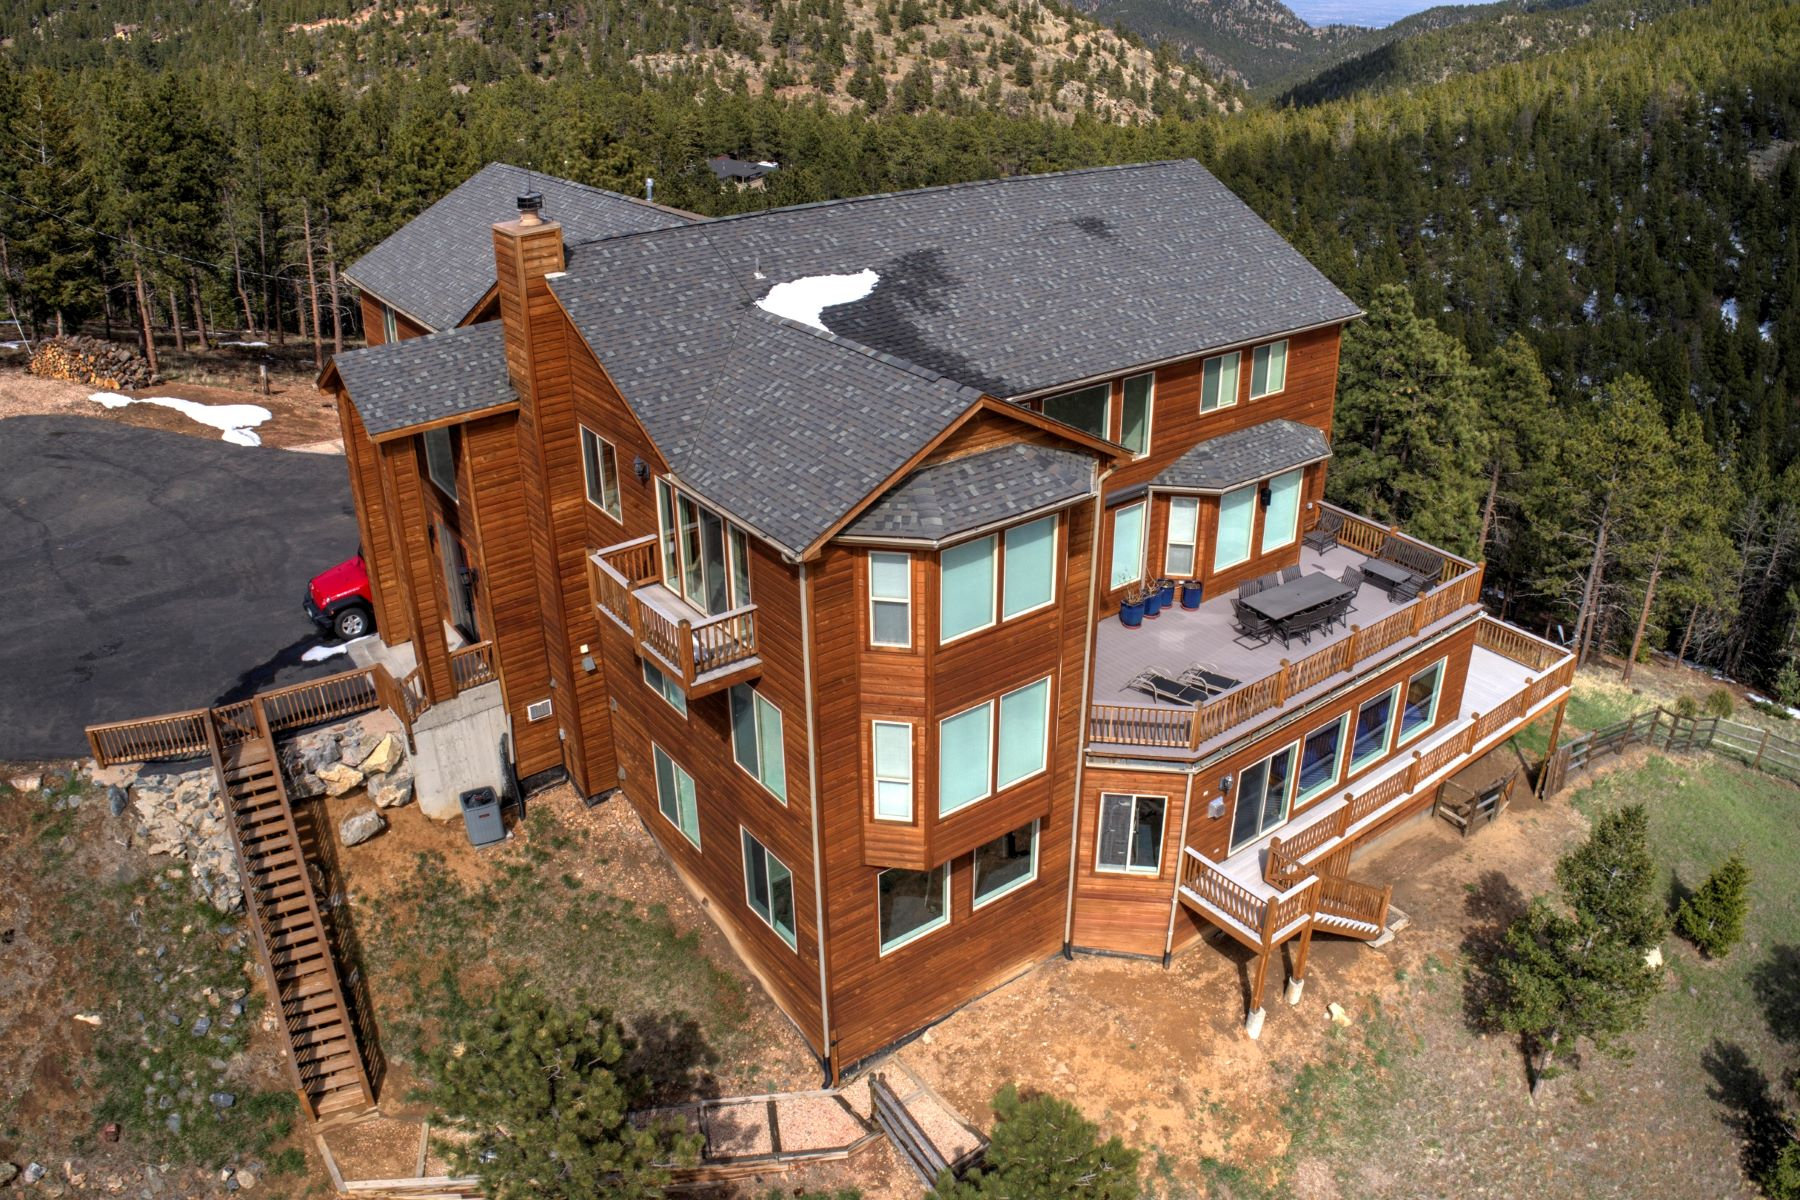 Single Family Home for Sale at Amazing Hilltop Views 29448 Loomis Way Golden, Colorado, 80403 United States